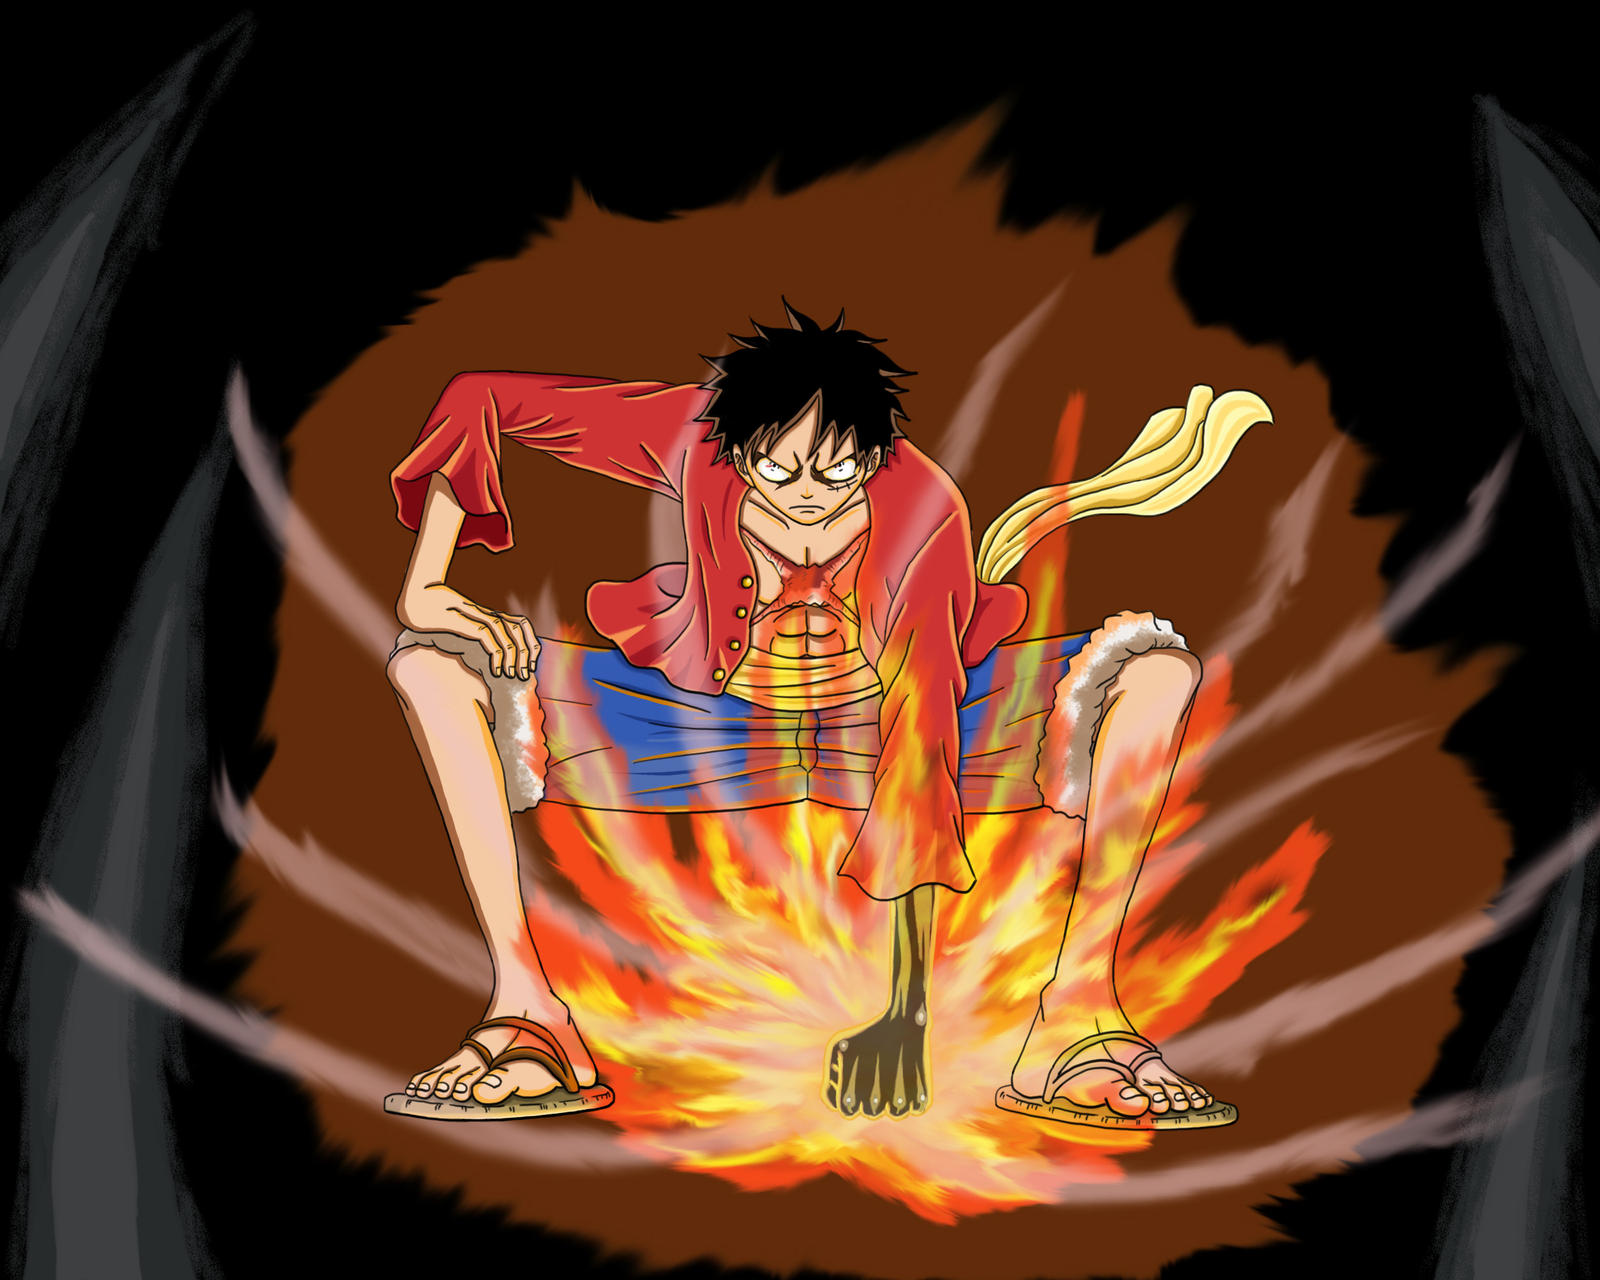 ace and luffy fighting wallpaper - photo #19